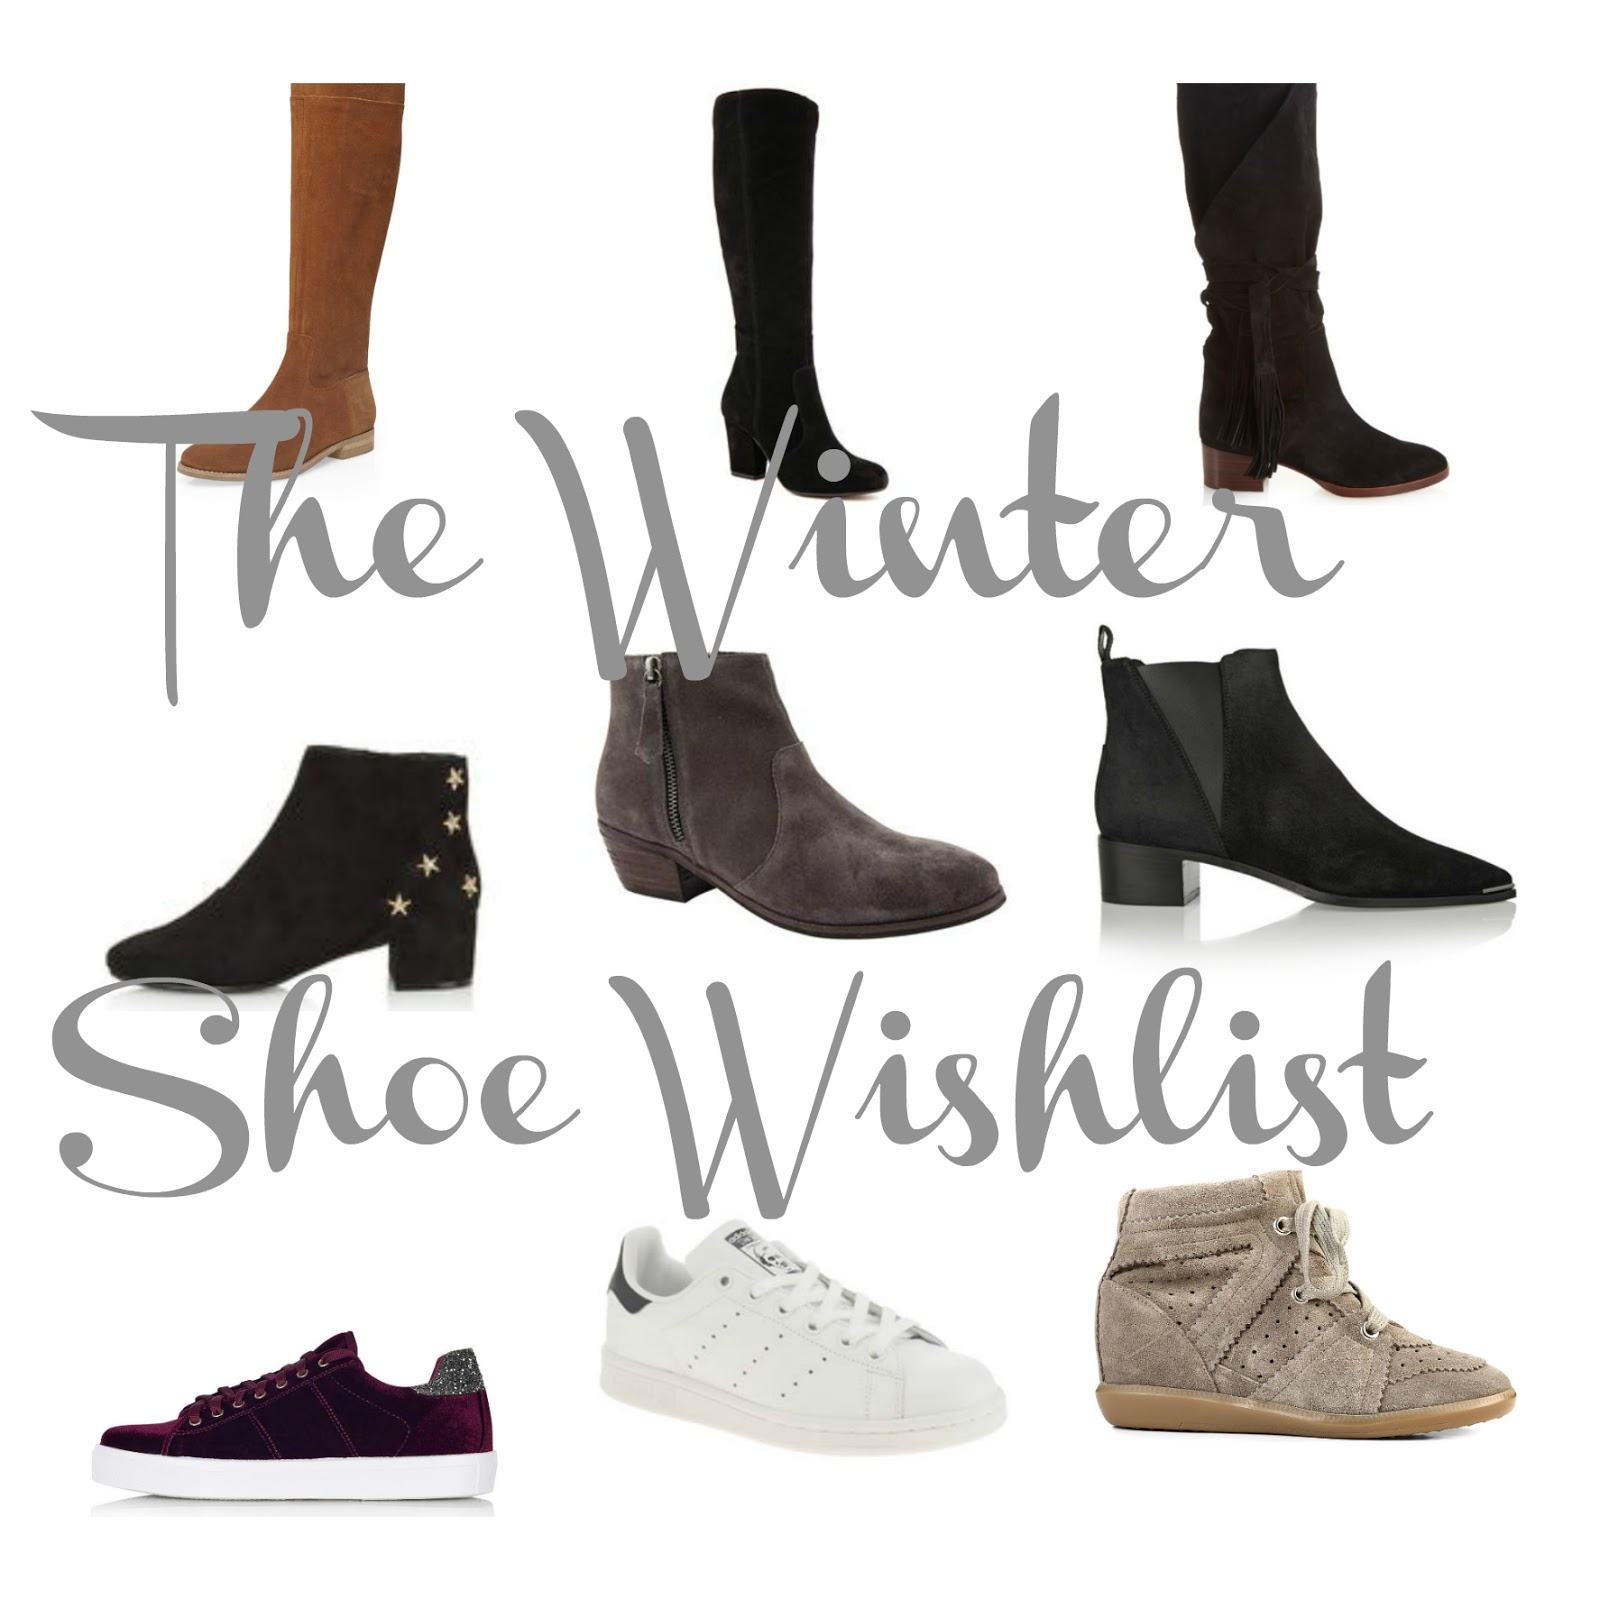 winter shoe wishlist, isabel marant bobby sneakers, acne jensen boots, topshop betty star boots, topshop carol trainers